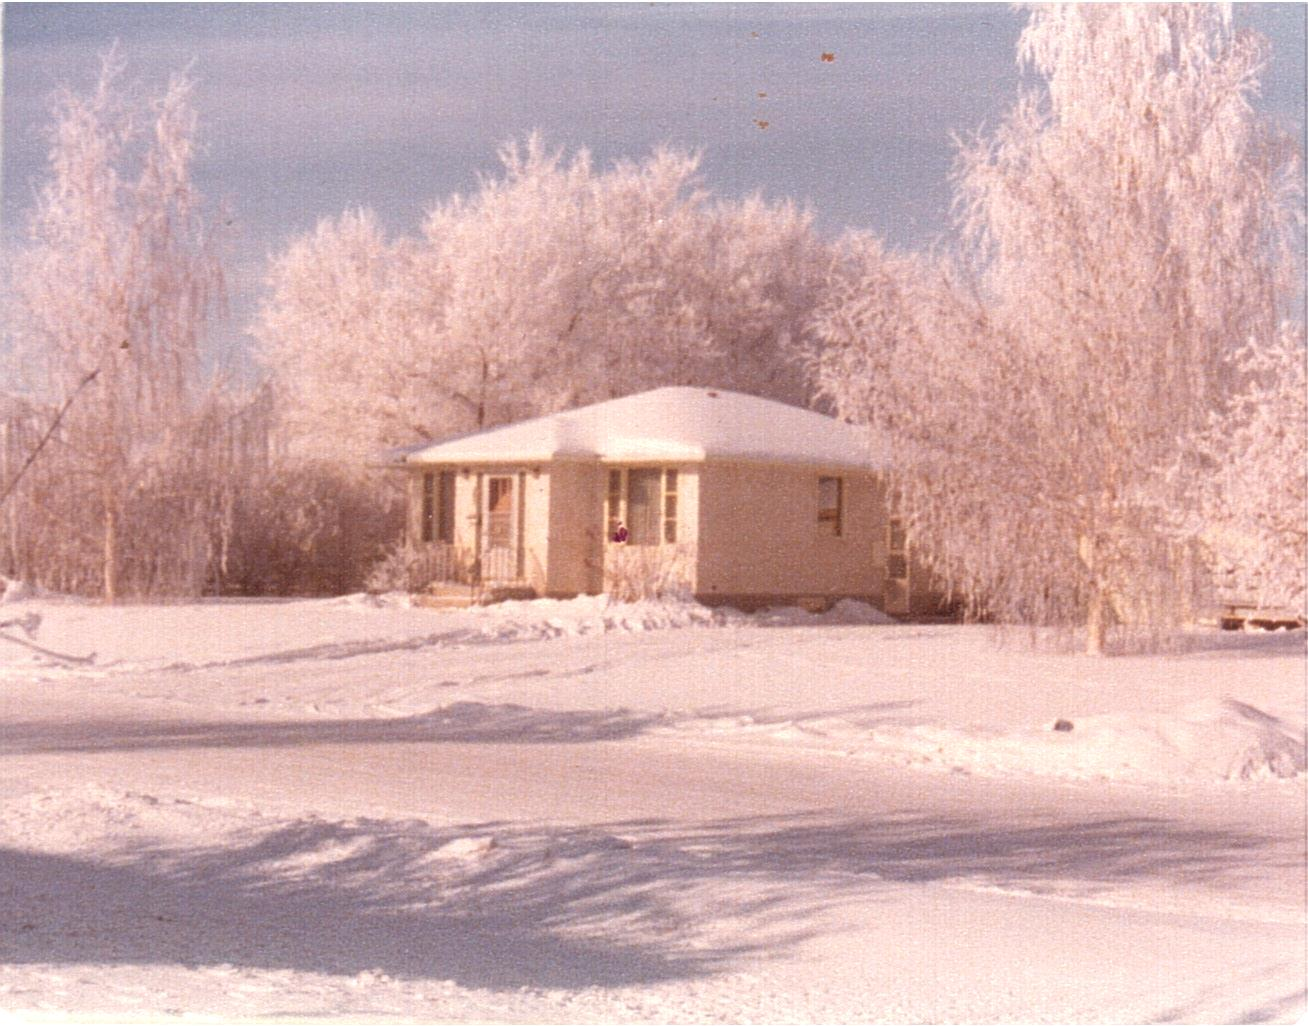 Vassie-Winter frost at 3144 Dieppe St c1970